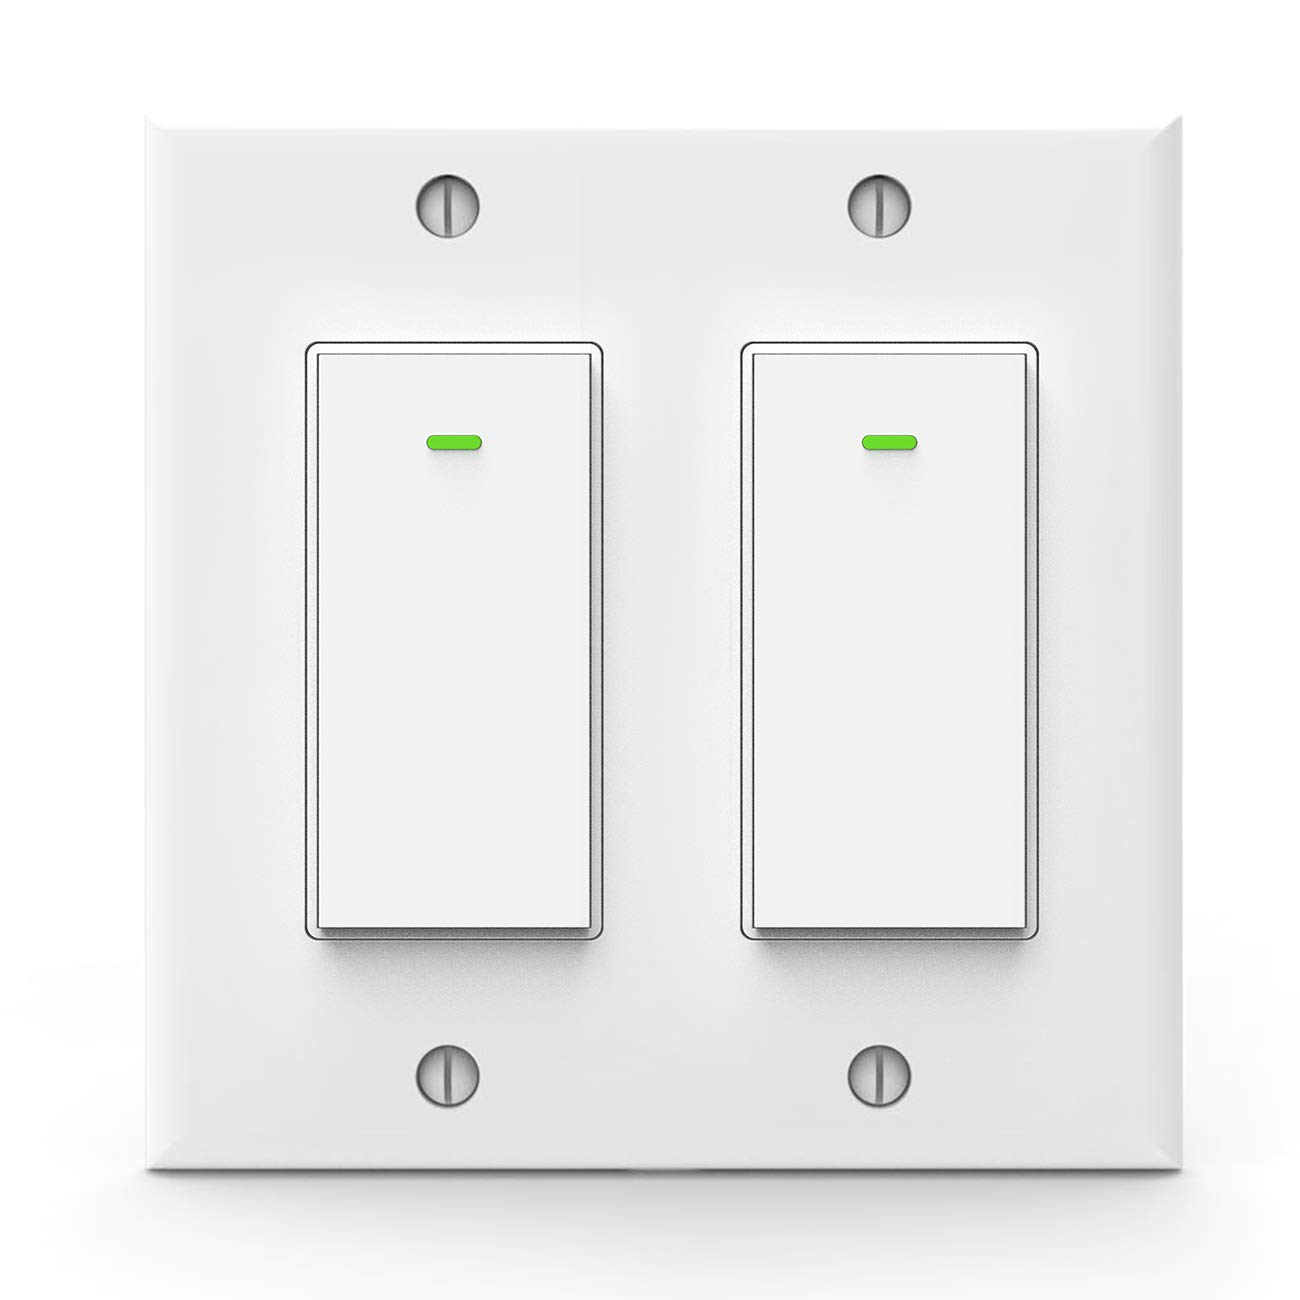 Alexa Light Switch, Double Smart Wifi Light Switches, Smart Switch 2 Gang Works with Google Assistant and IFTTT